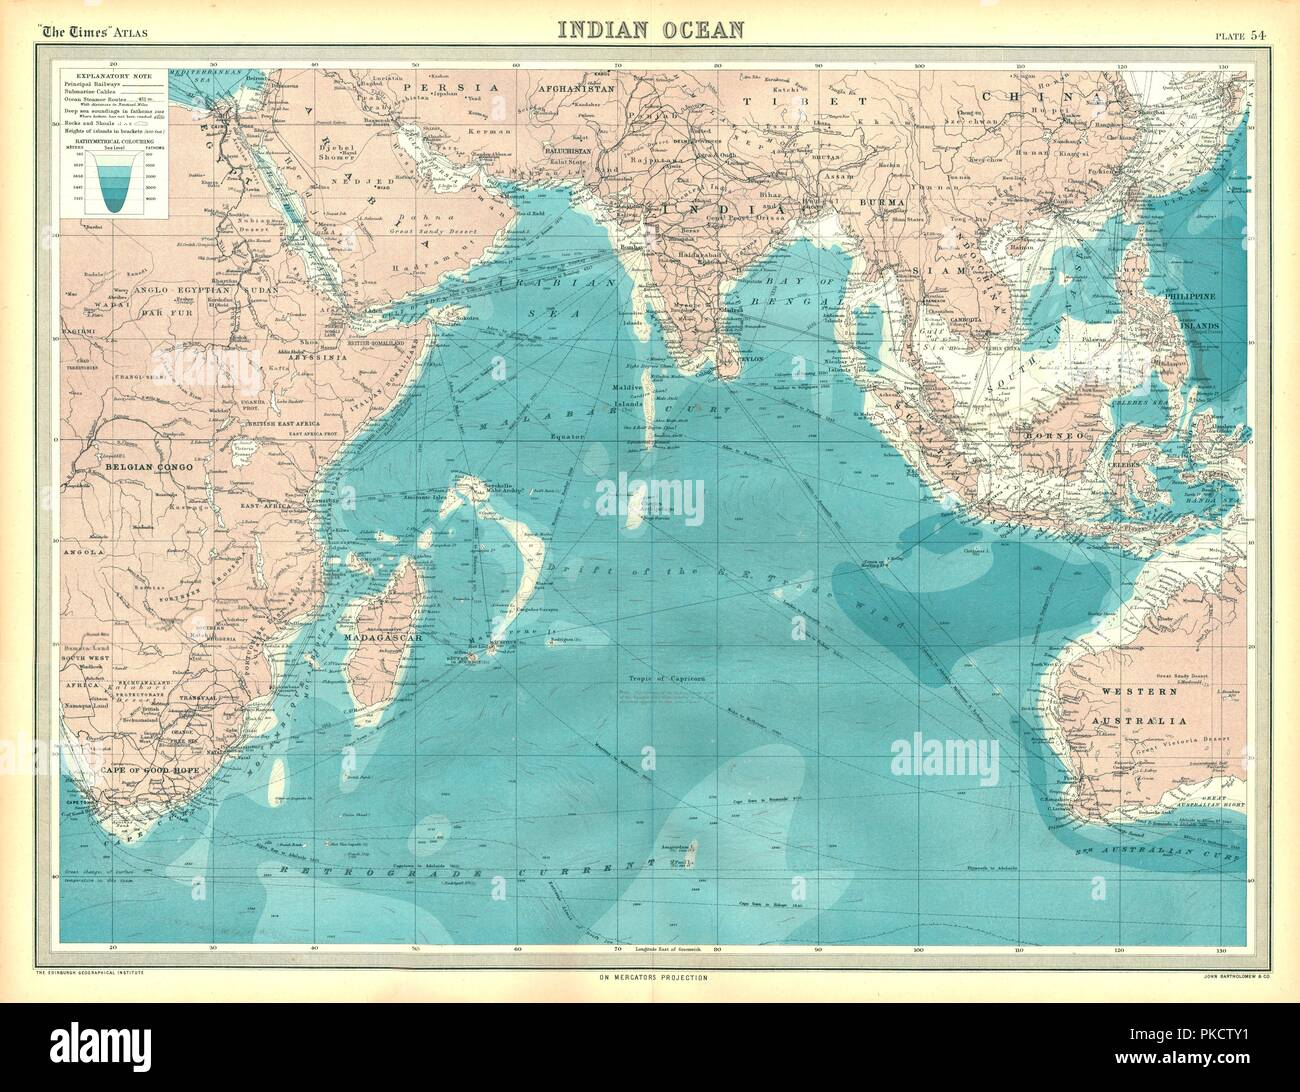 Map of the Indian Ocean. Map showing the Indian subcontinent, East ...